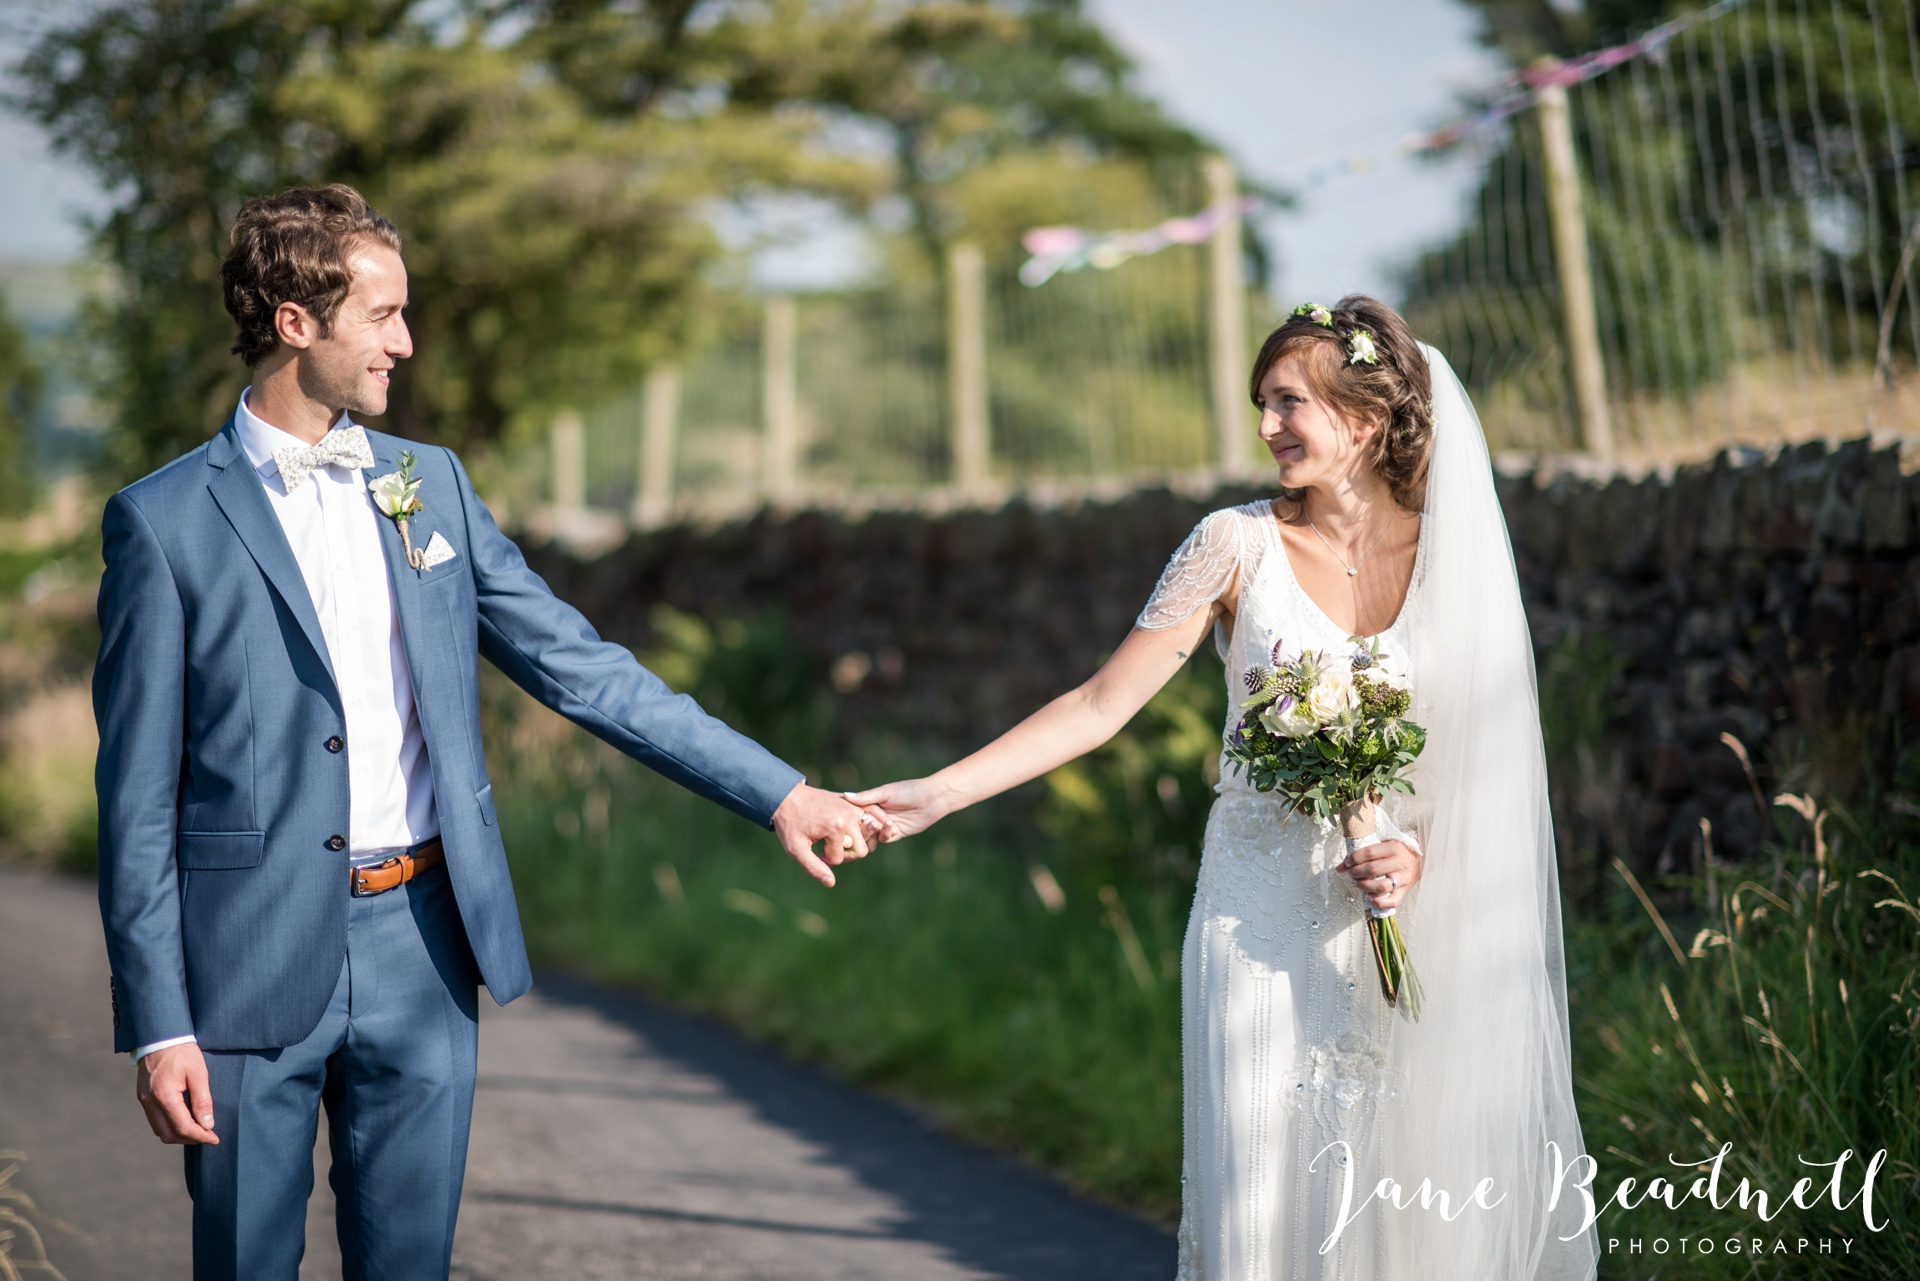 Jane Beadnell fine art wedding photographer Leeds_0086